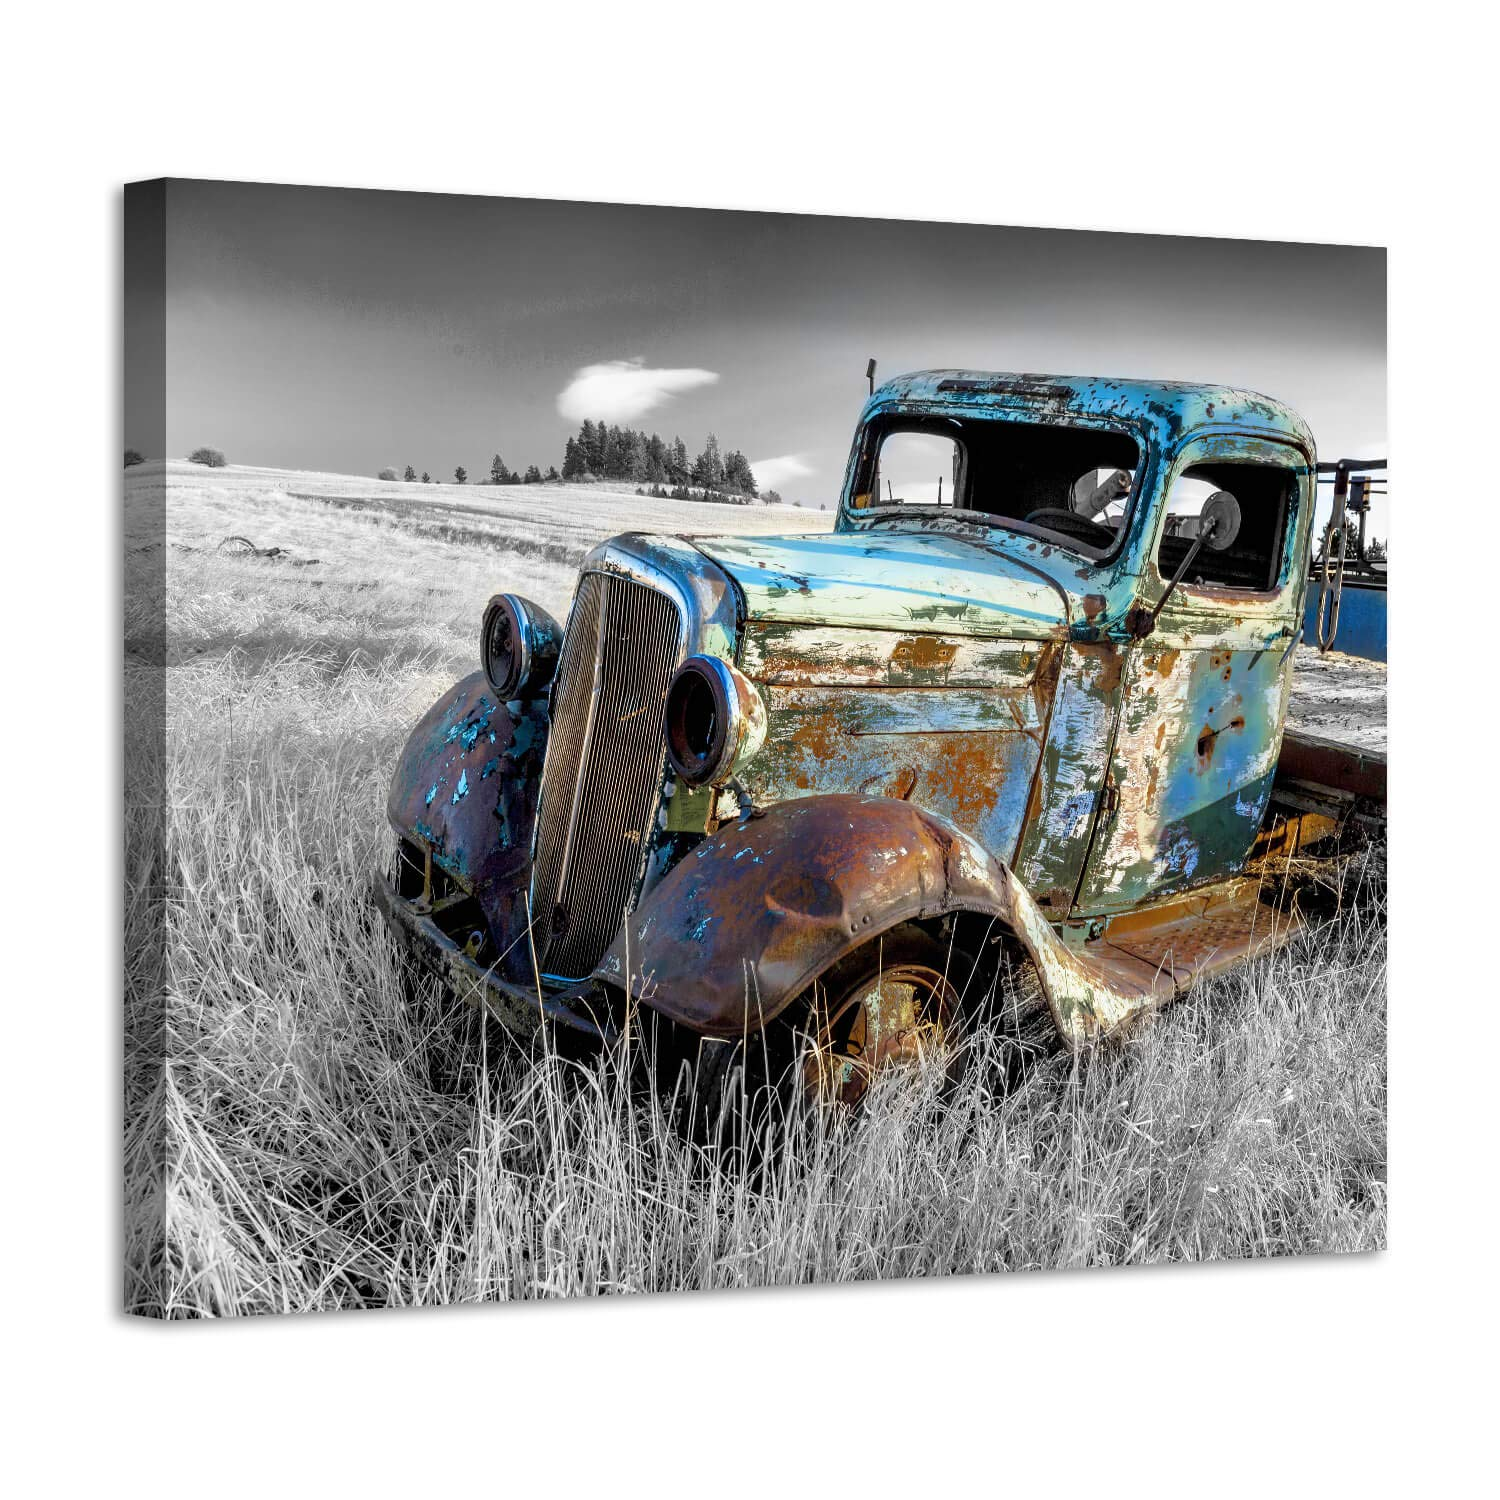 """Rusty Car Canvas Wall Art: Old Truck Pictures Paintings Print on Canvas Artwork for Bedroom (16""""W x 12""""H,Multi-Sized)"""